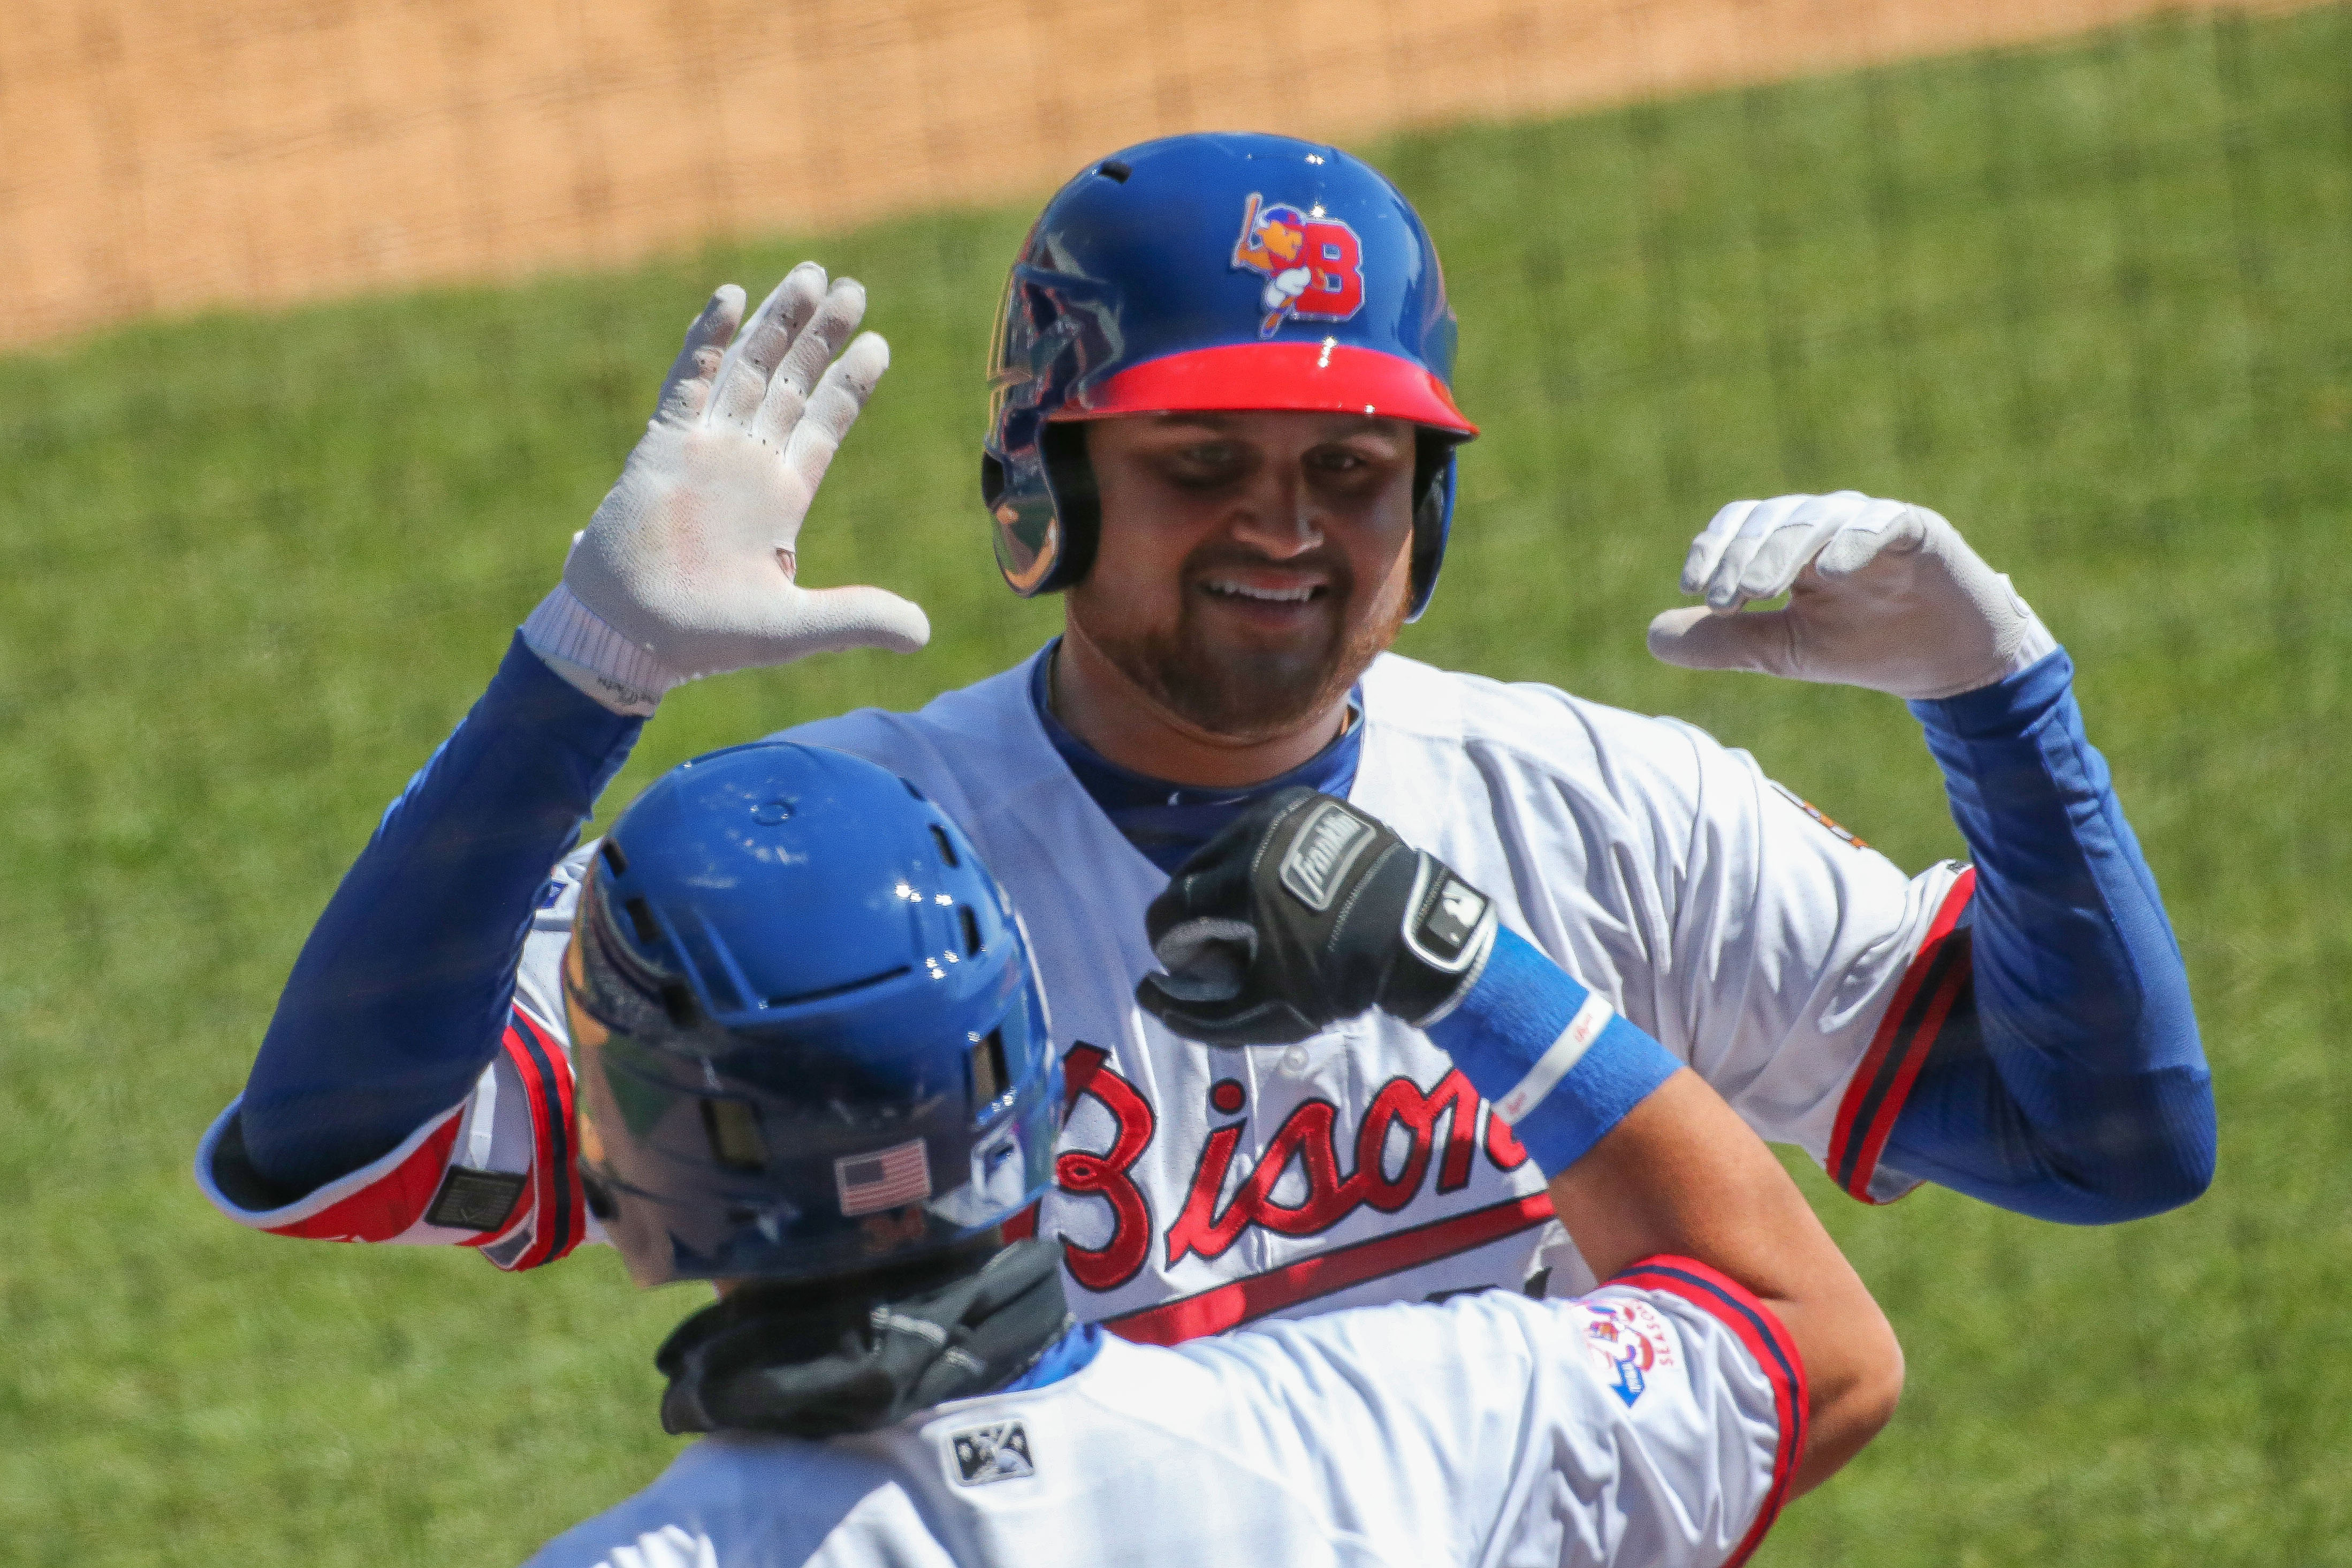 It was an up-and-down season for Blue Jays prospect Rowdy Tellez. (Derek Gee/Buffalo News)